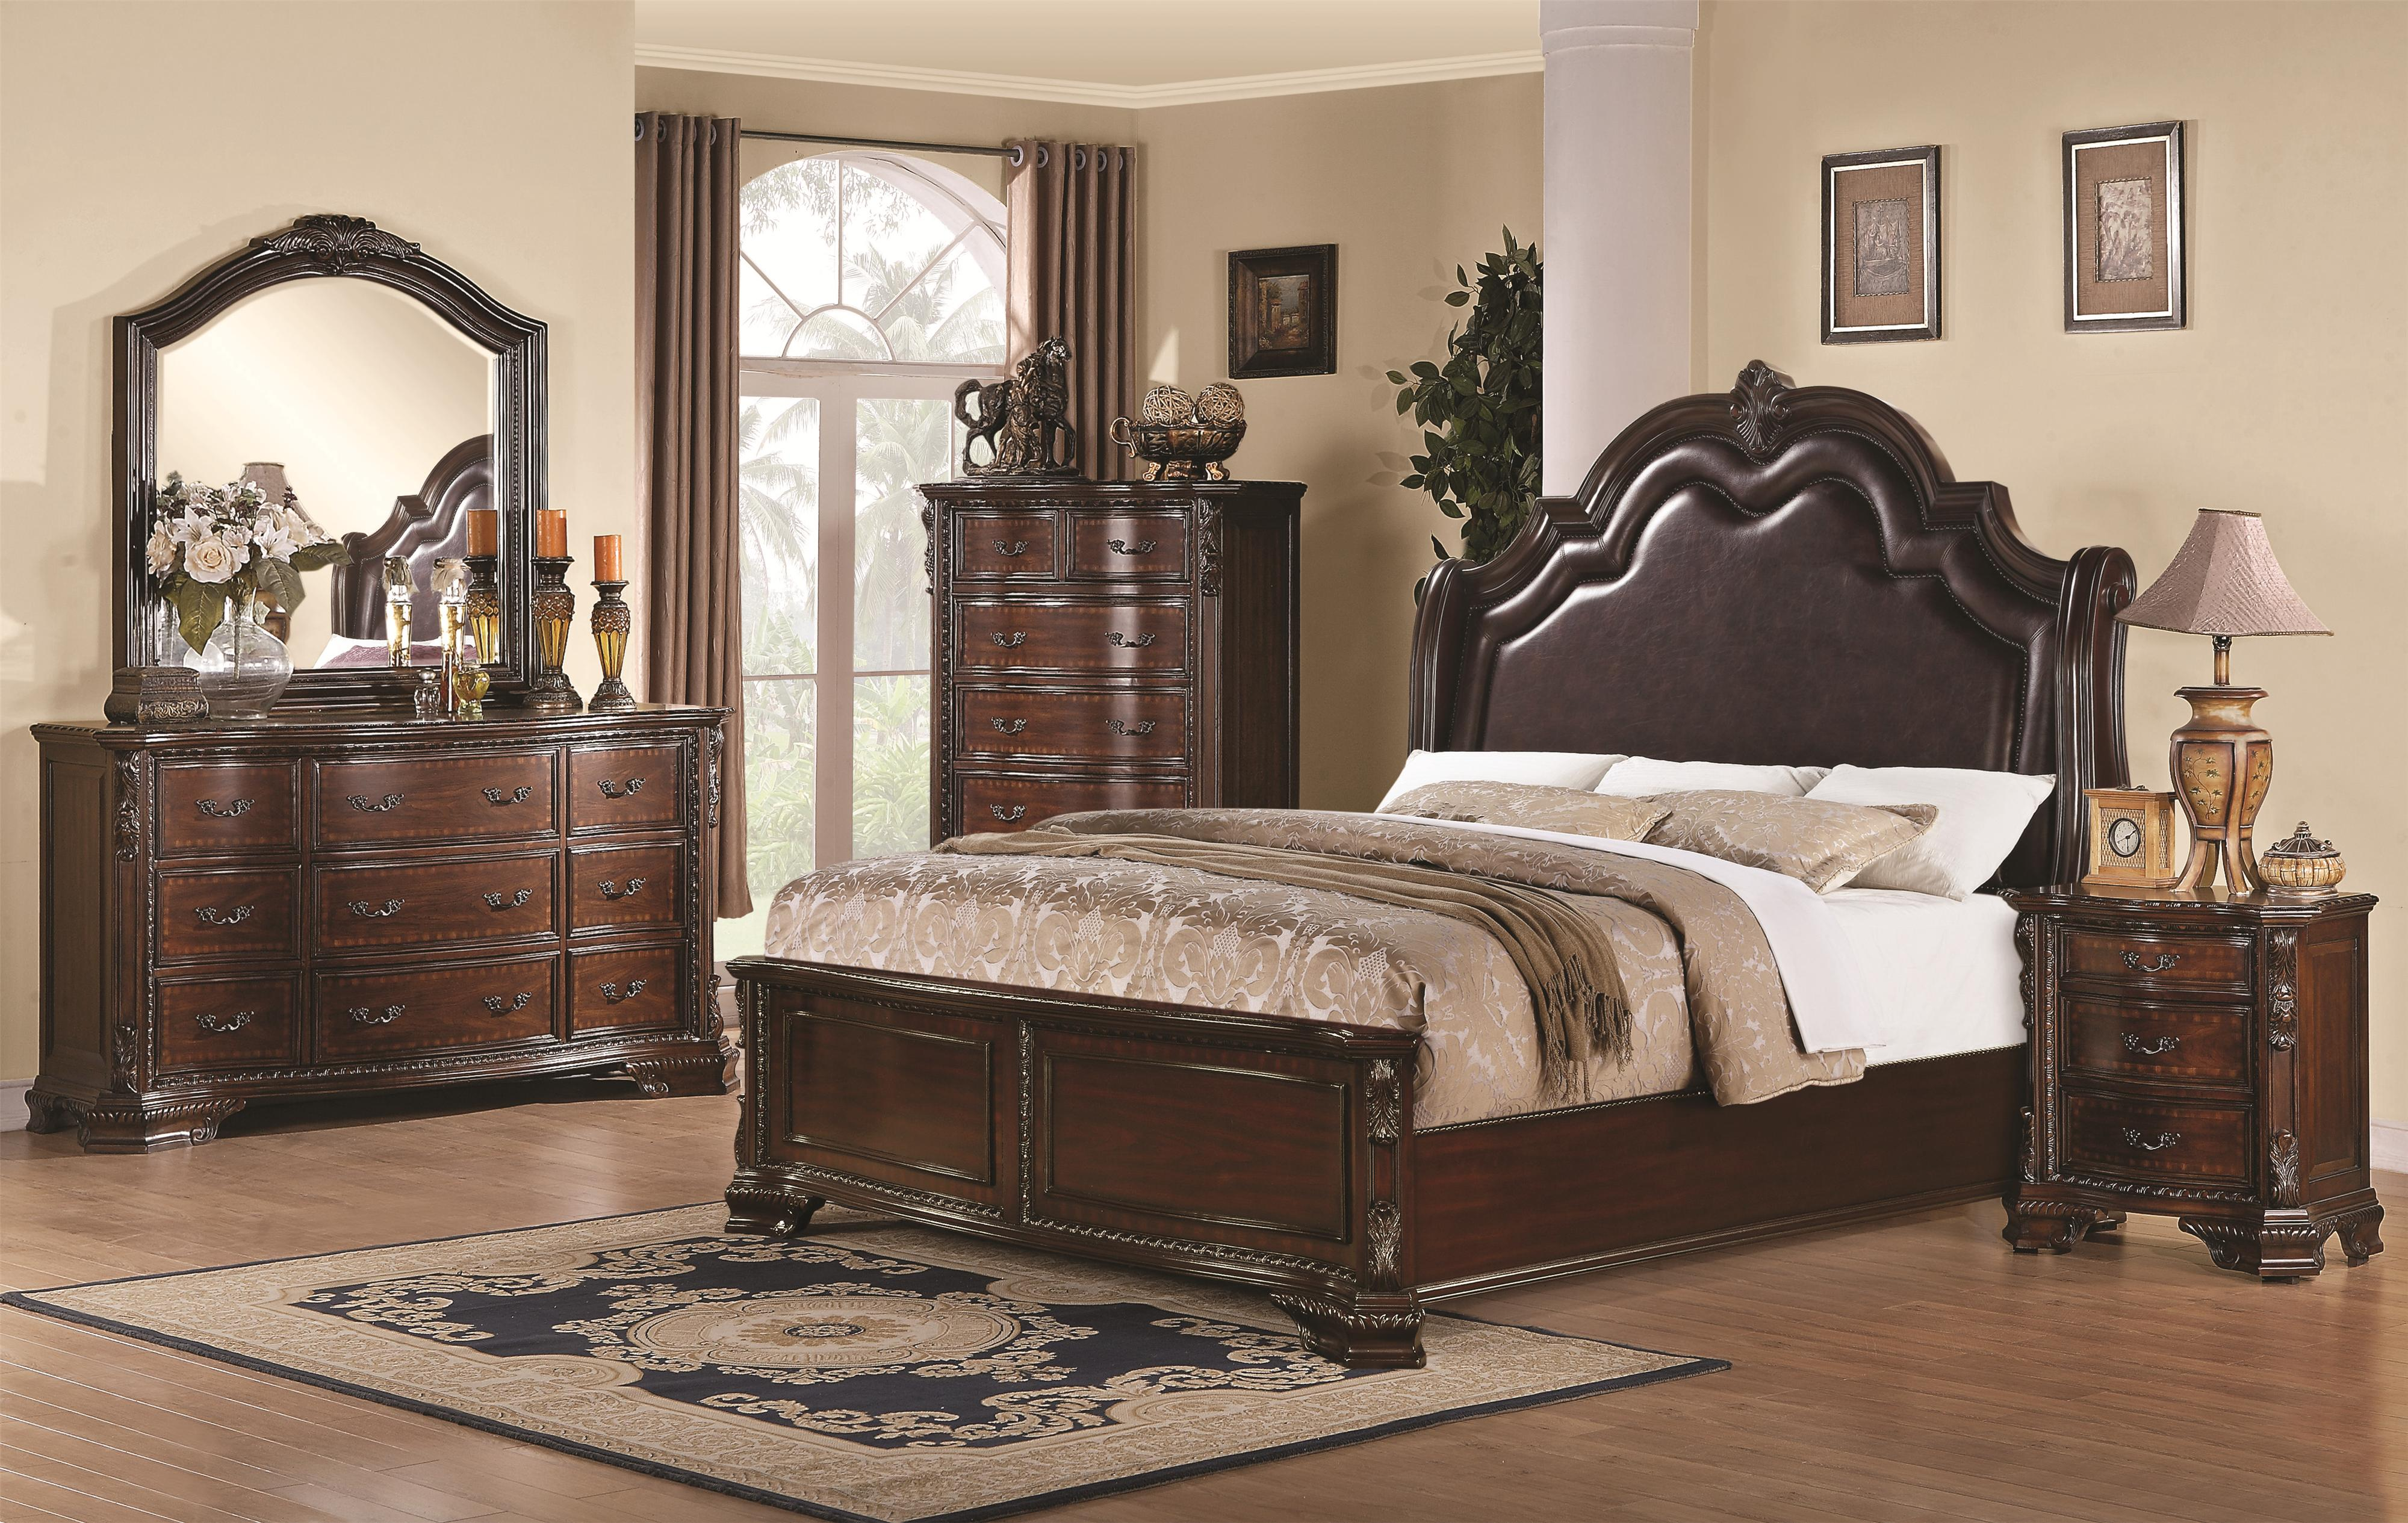 King Bedroom Furniture Coaster Maddison King Sleigh Bed With Upholstered Headboard